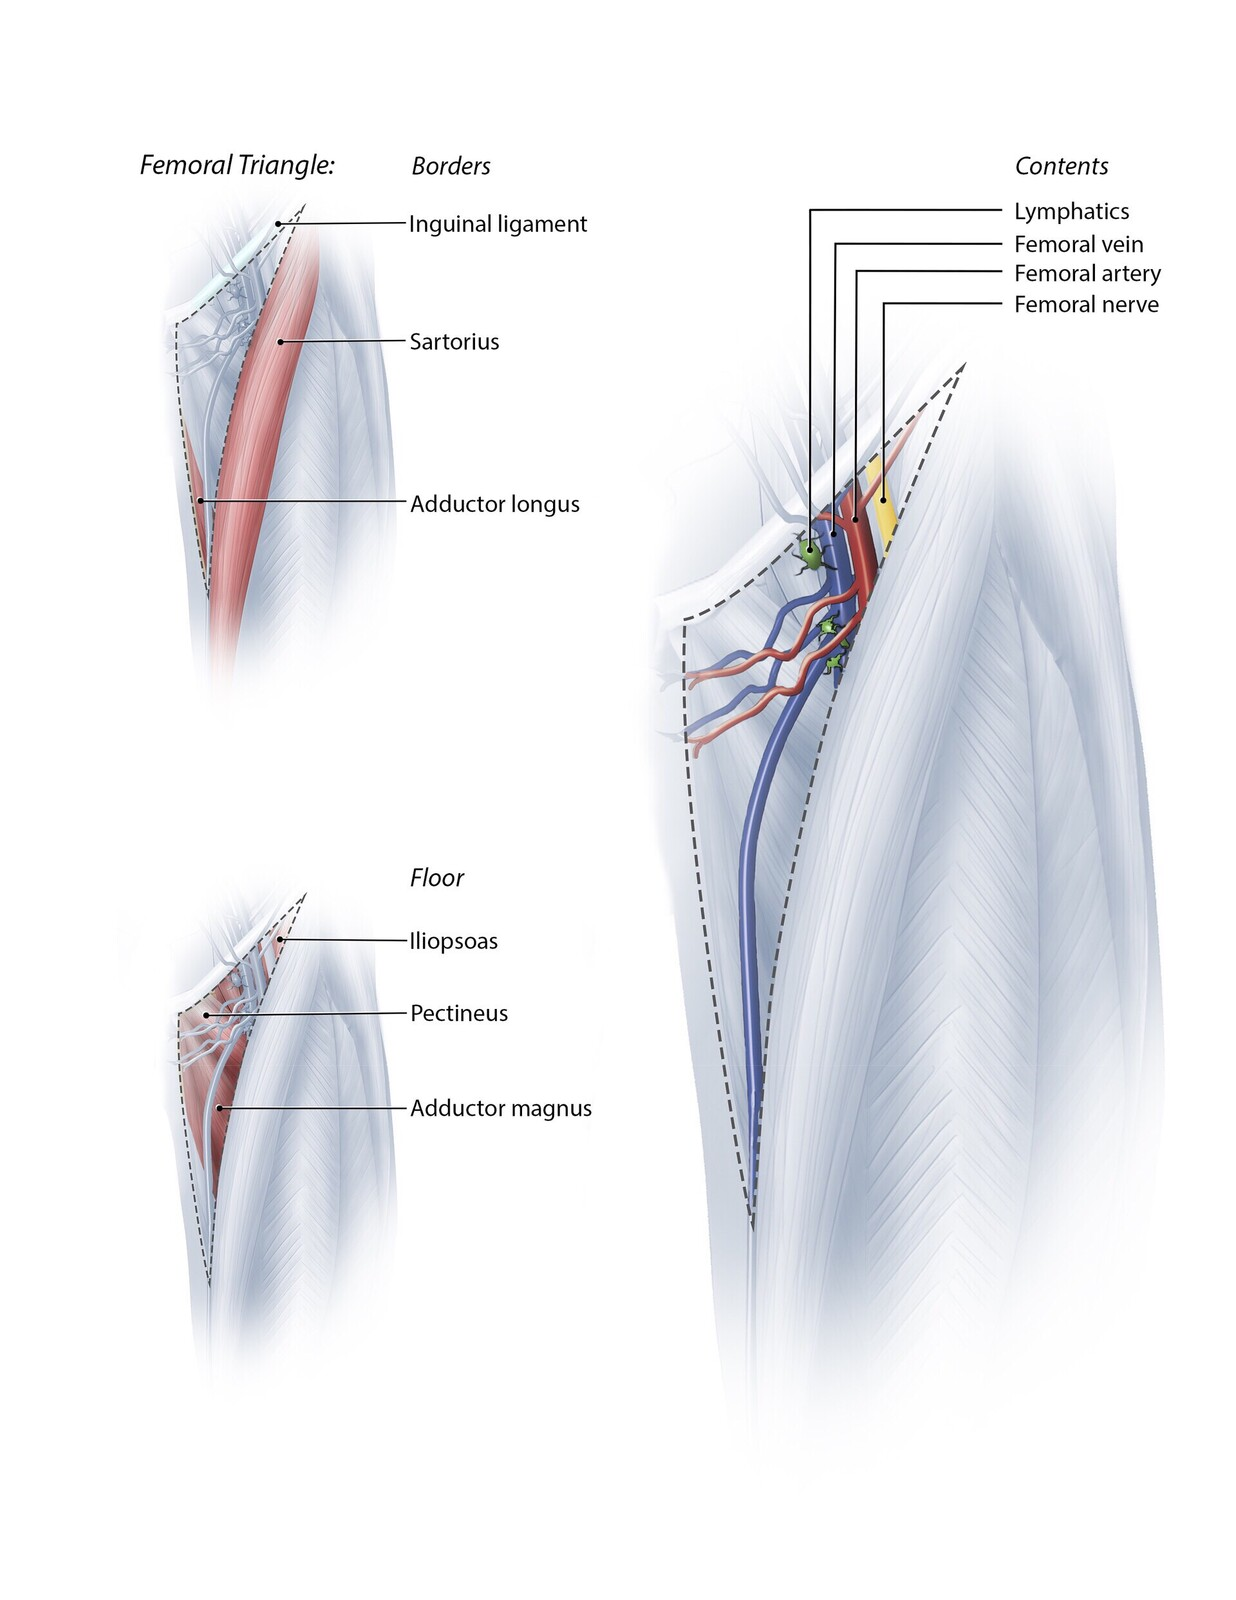 Anatomy of the Femoral Triangle